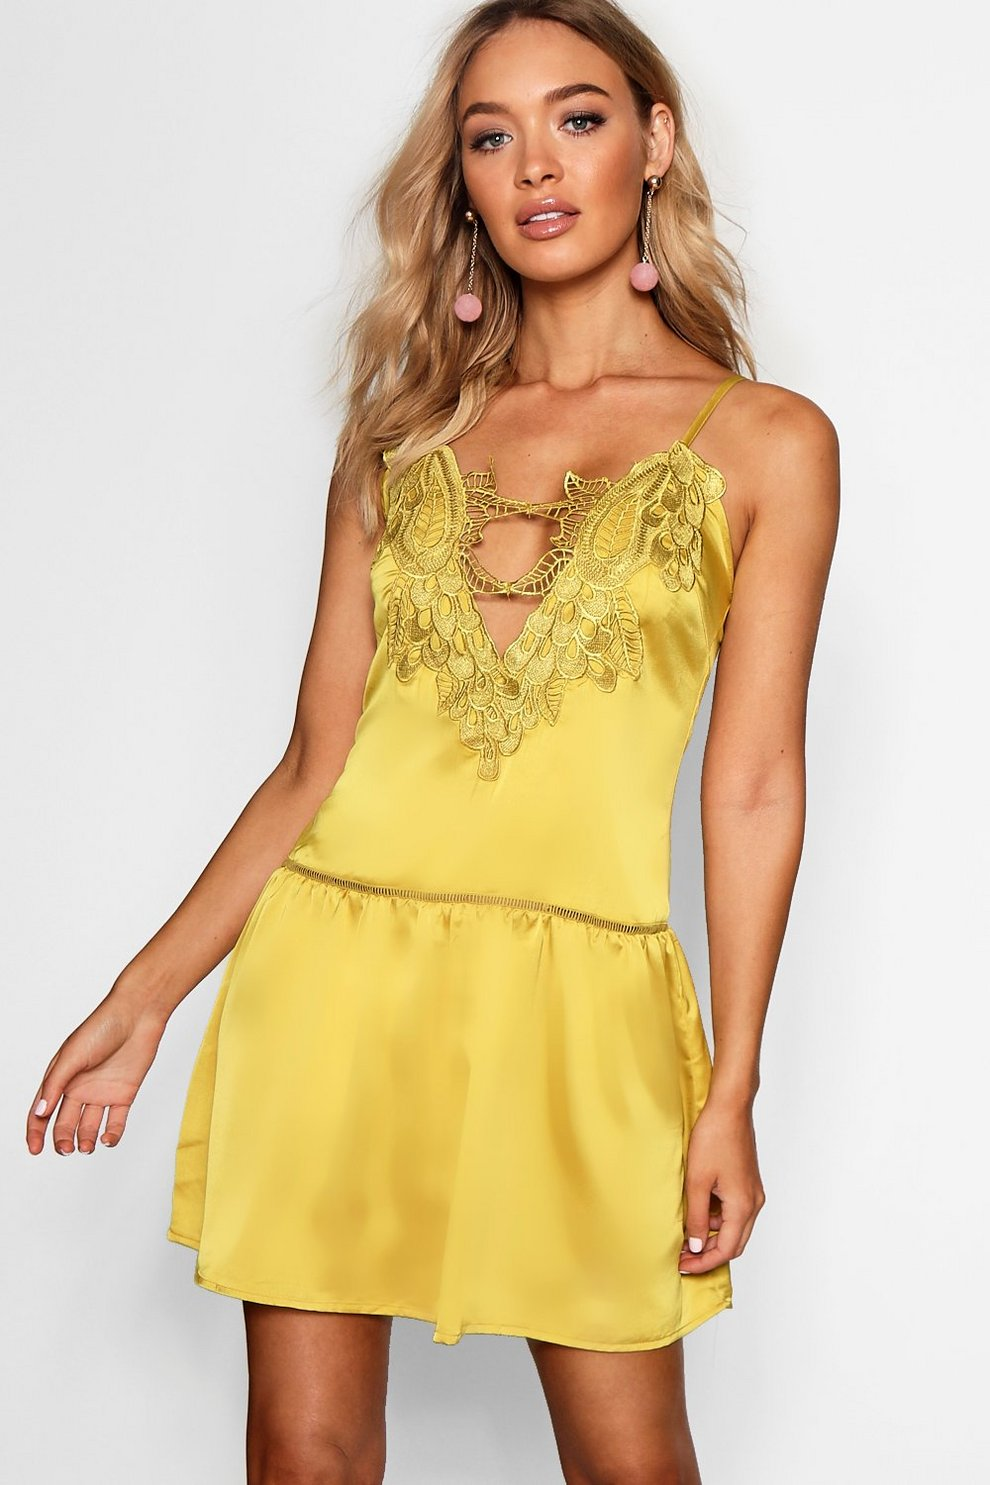 Boohoo Rosaline Crochet Plunge Shift Dress Clearance Sale Buy Cheap Sale View Cheap Online fwfoy4CfnG